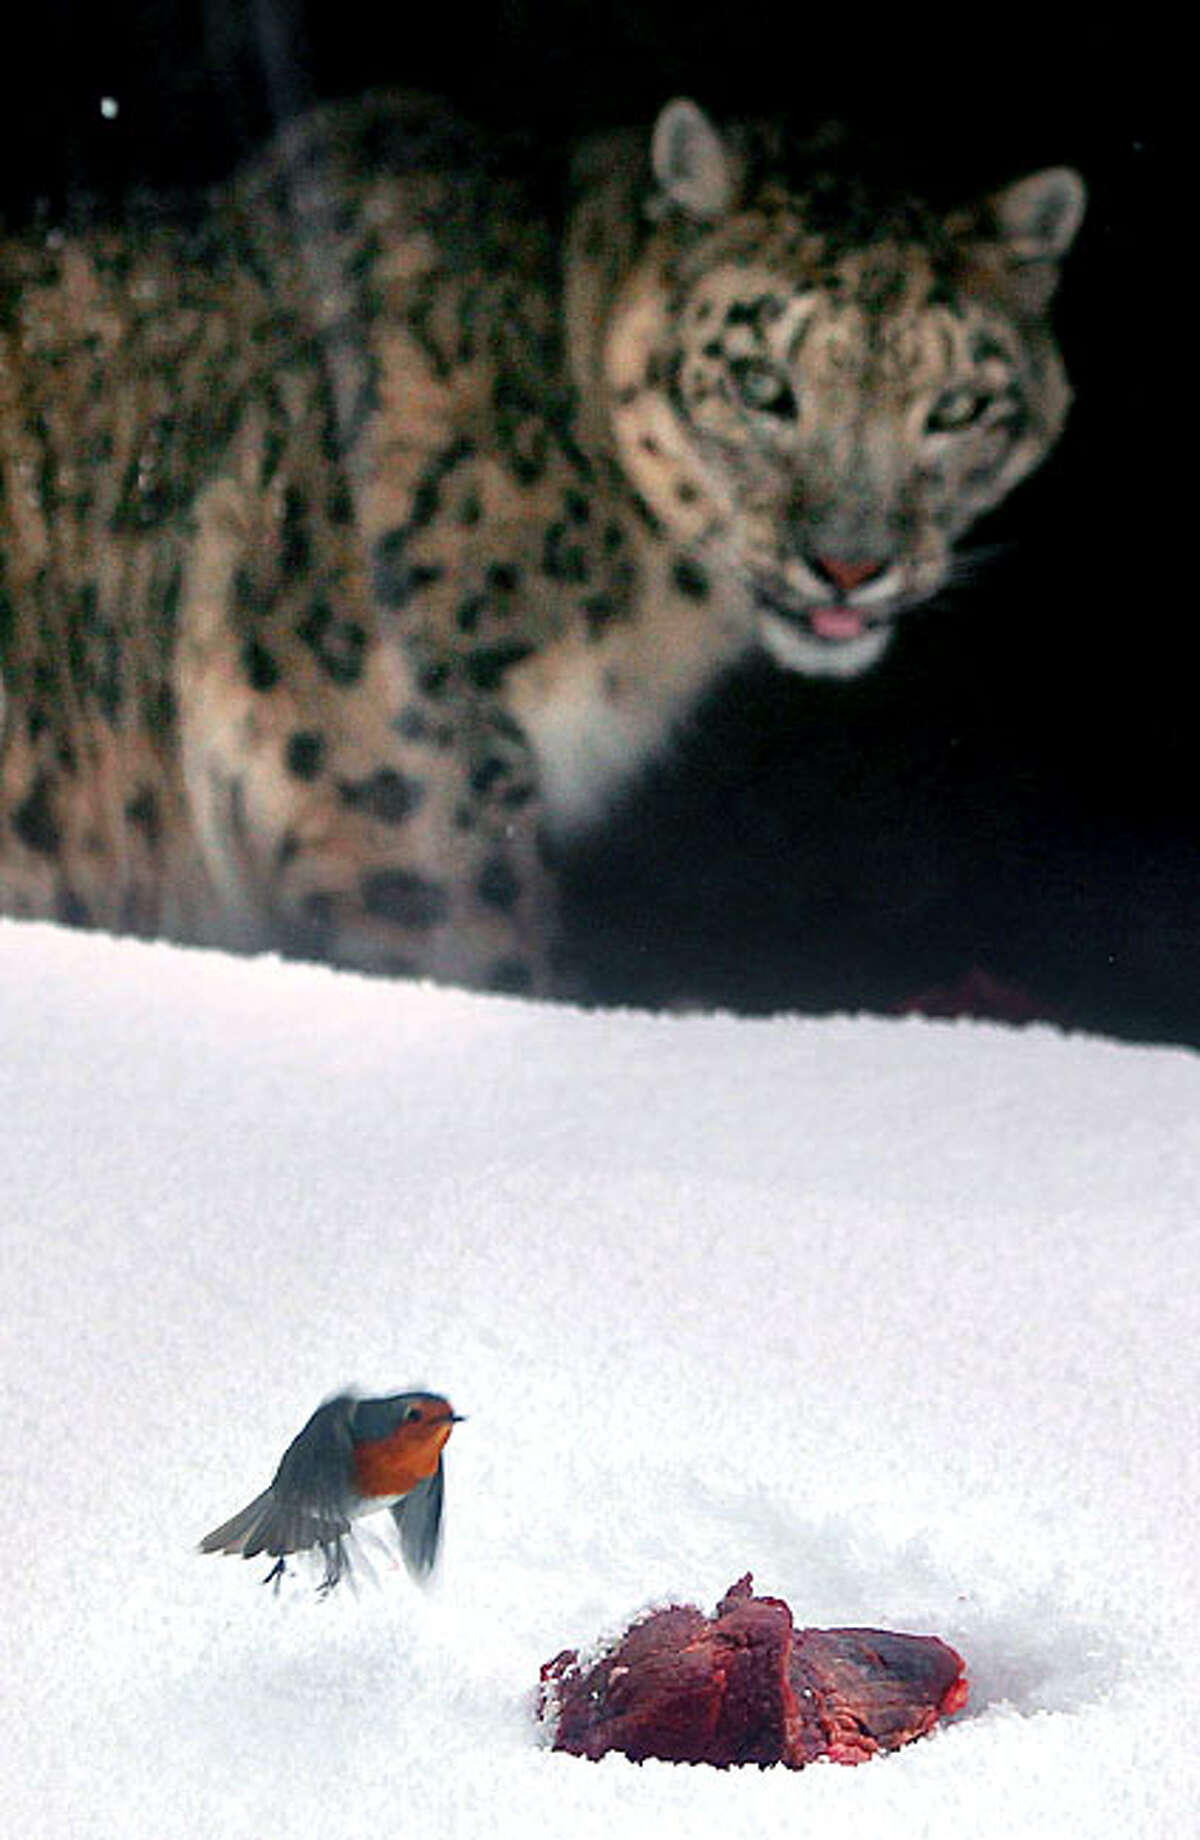 A Robin comes to the attention of a Snow Leopard and his meal during feeding time in Dublin Zoo as heavy snowfalls and freezing conditions continue in the Republic of Ireland, Wednesday, Dec. 1, 2010.